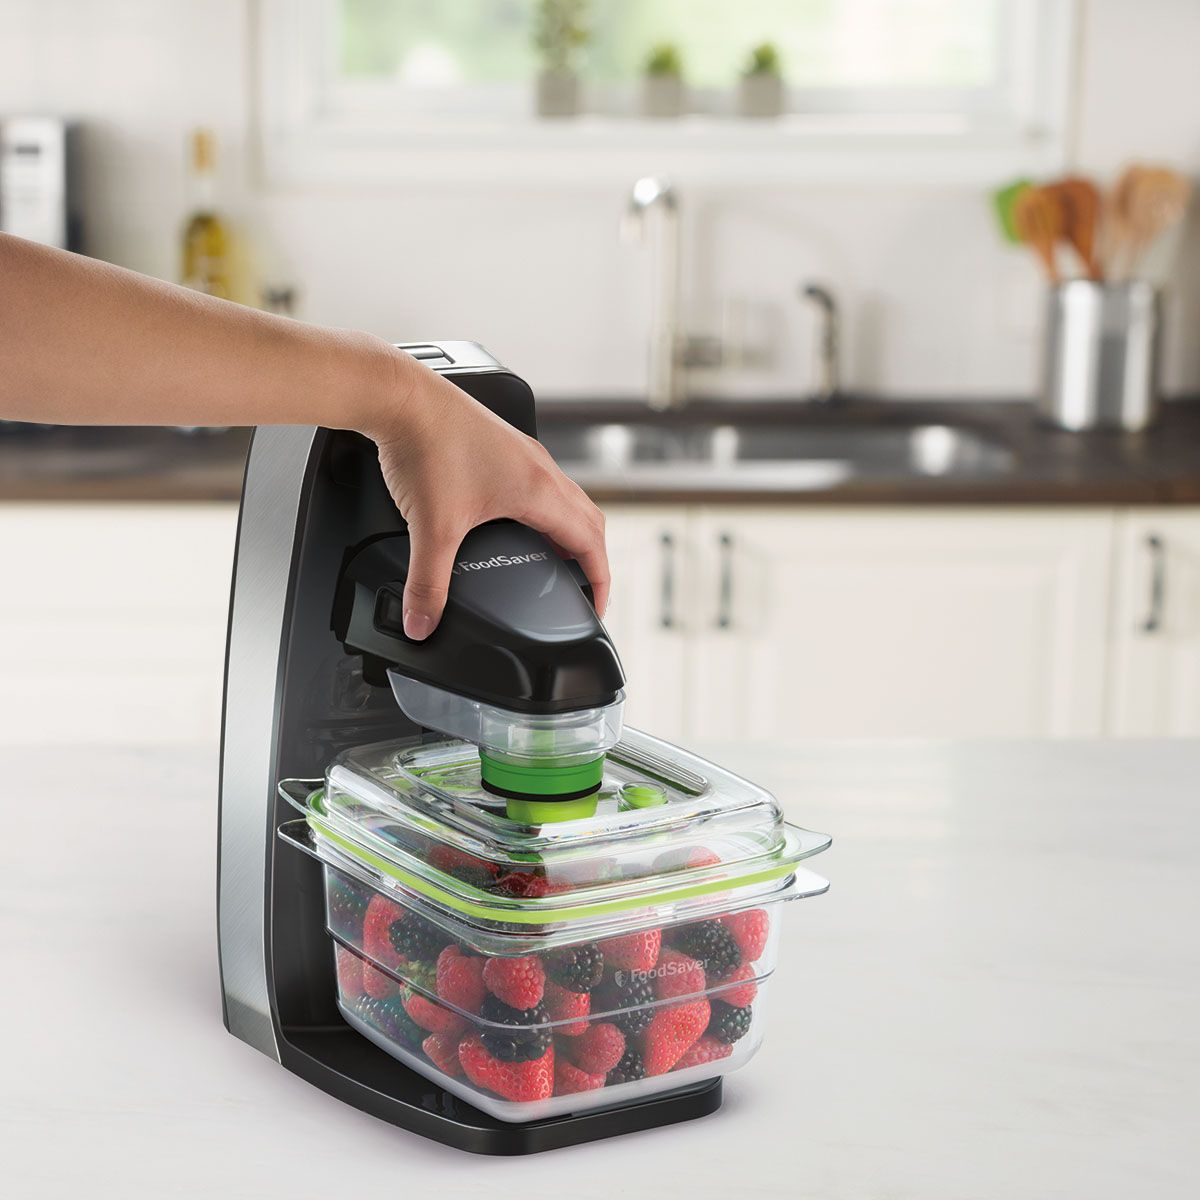 How To Freeze Blueberries With Foodsaver